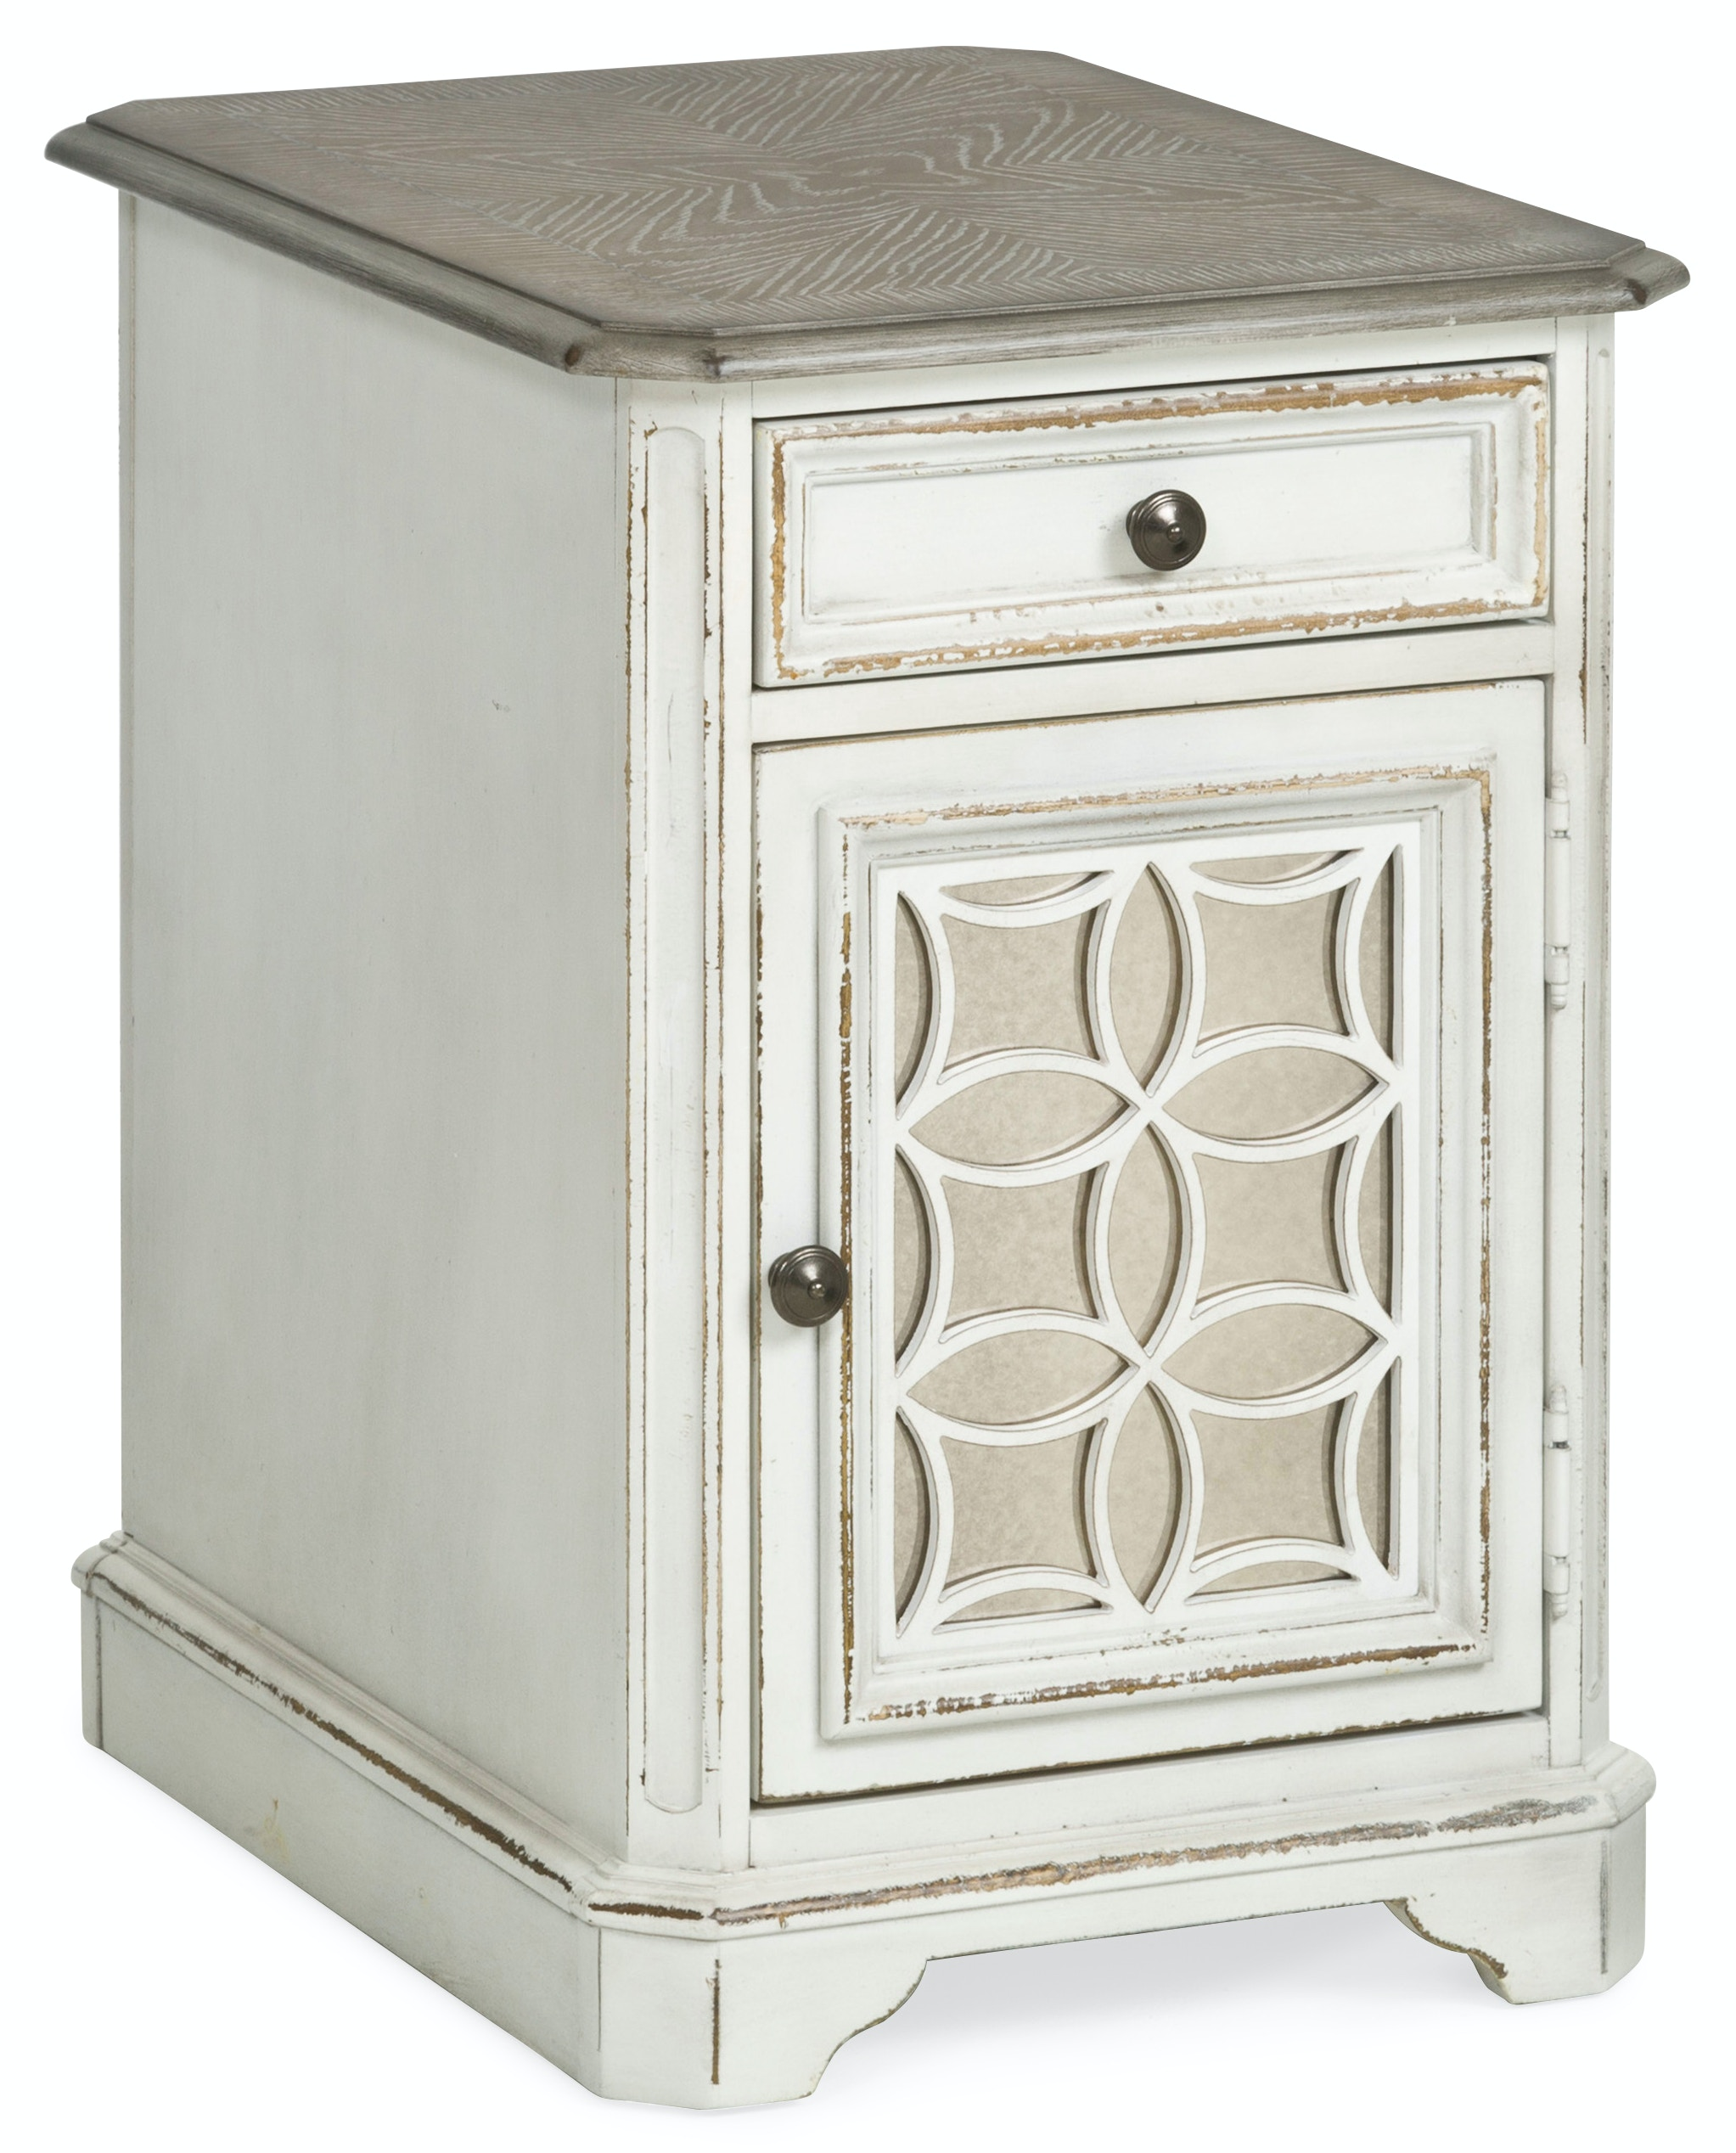 Magnolia Manor Chairside Table ST:494699